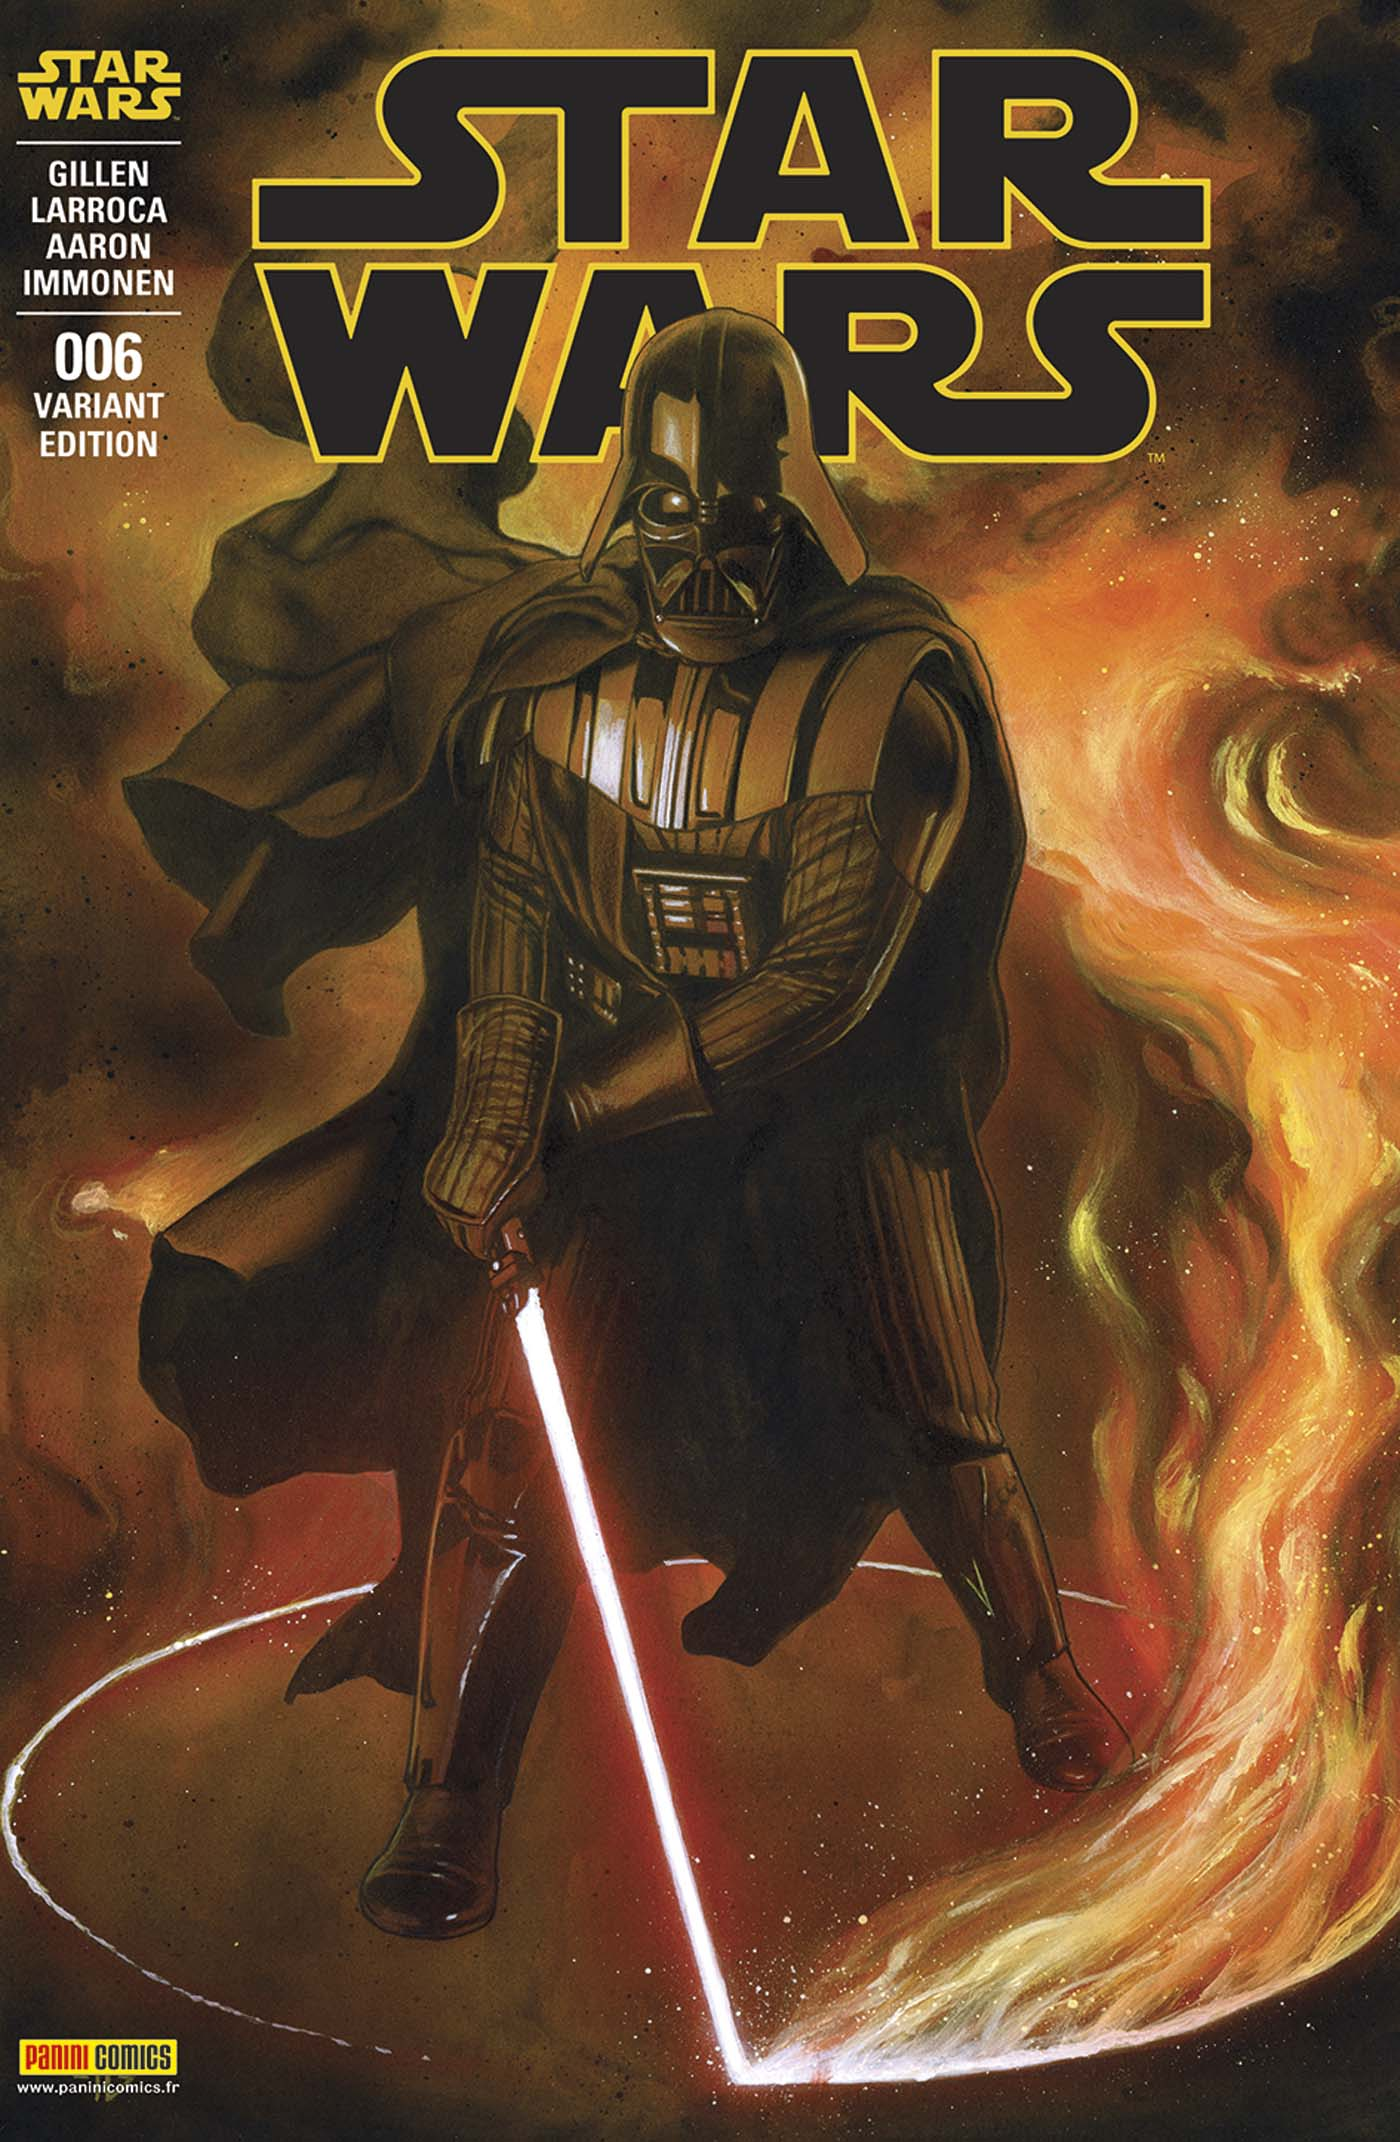 Star Wars Comics 6 - Couverture B